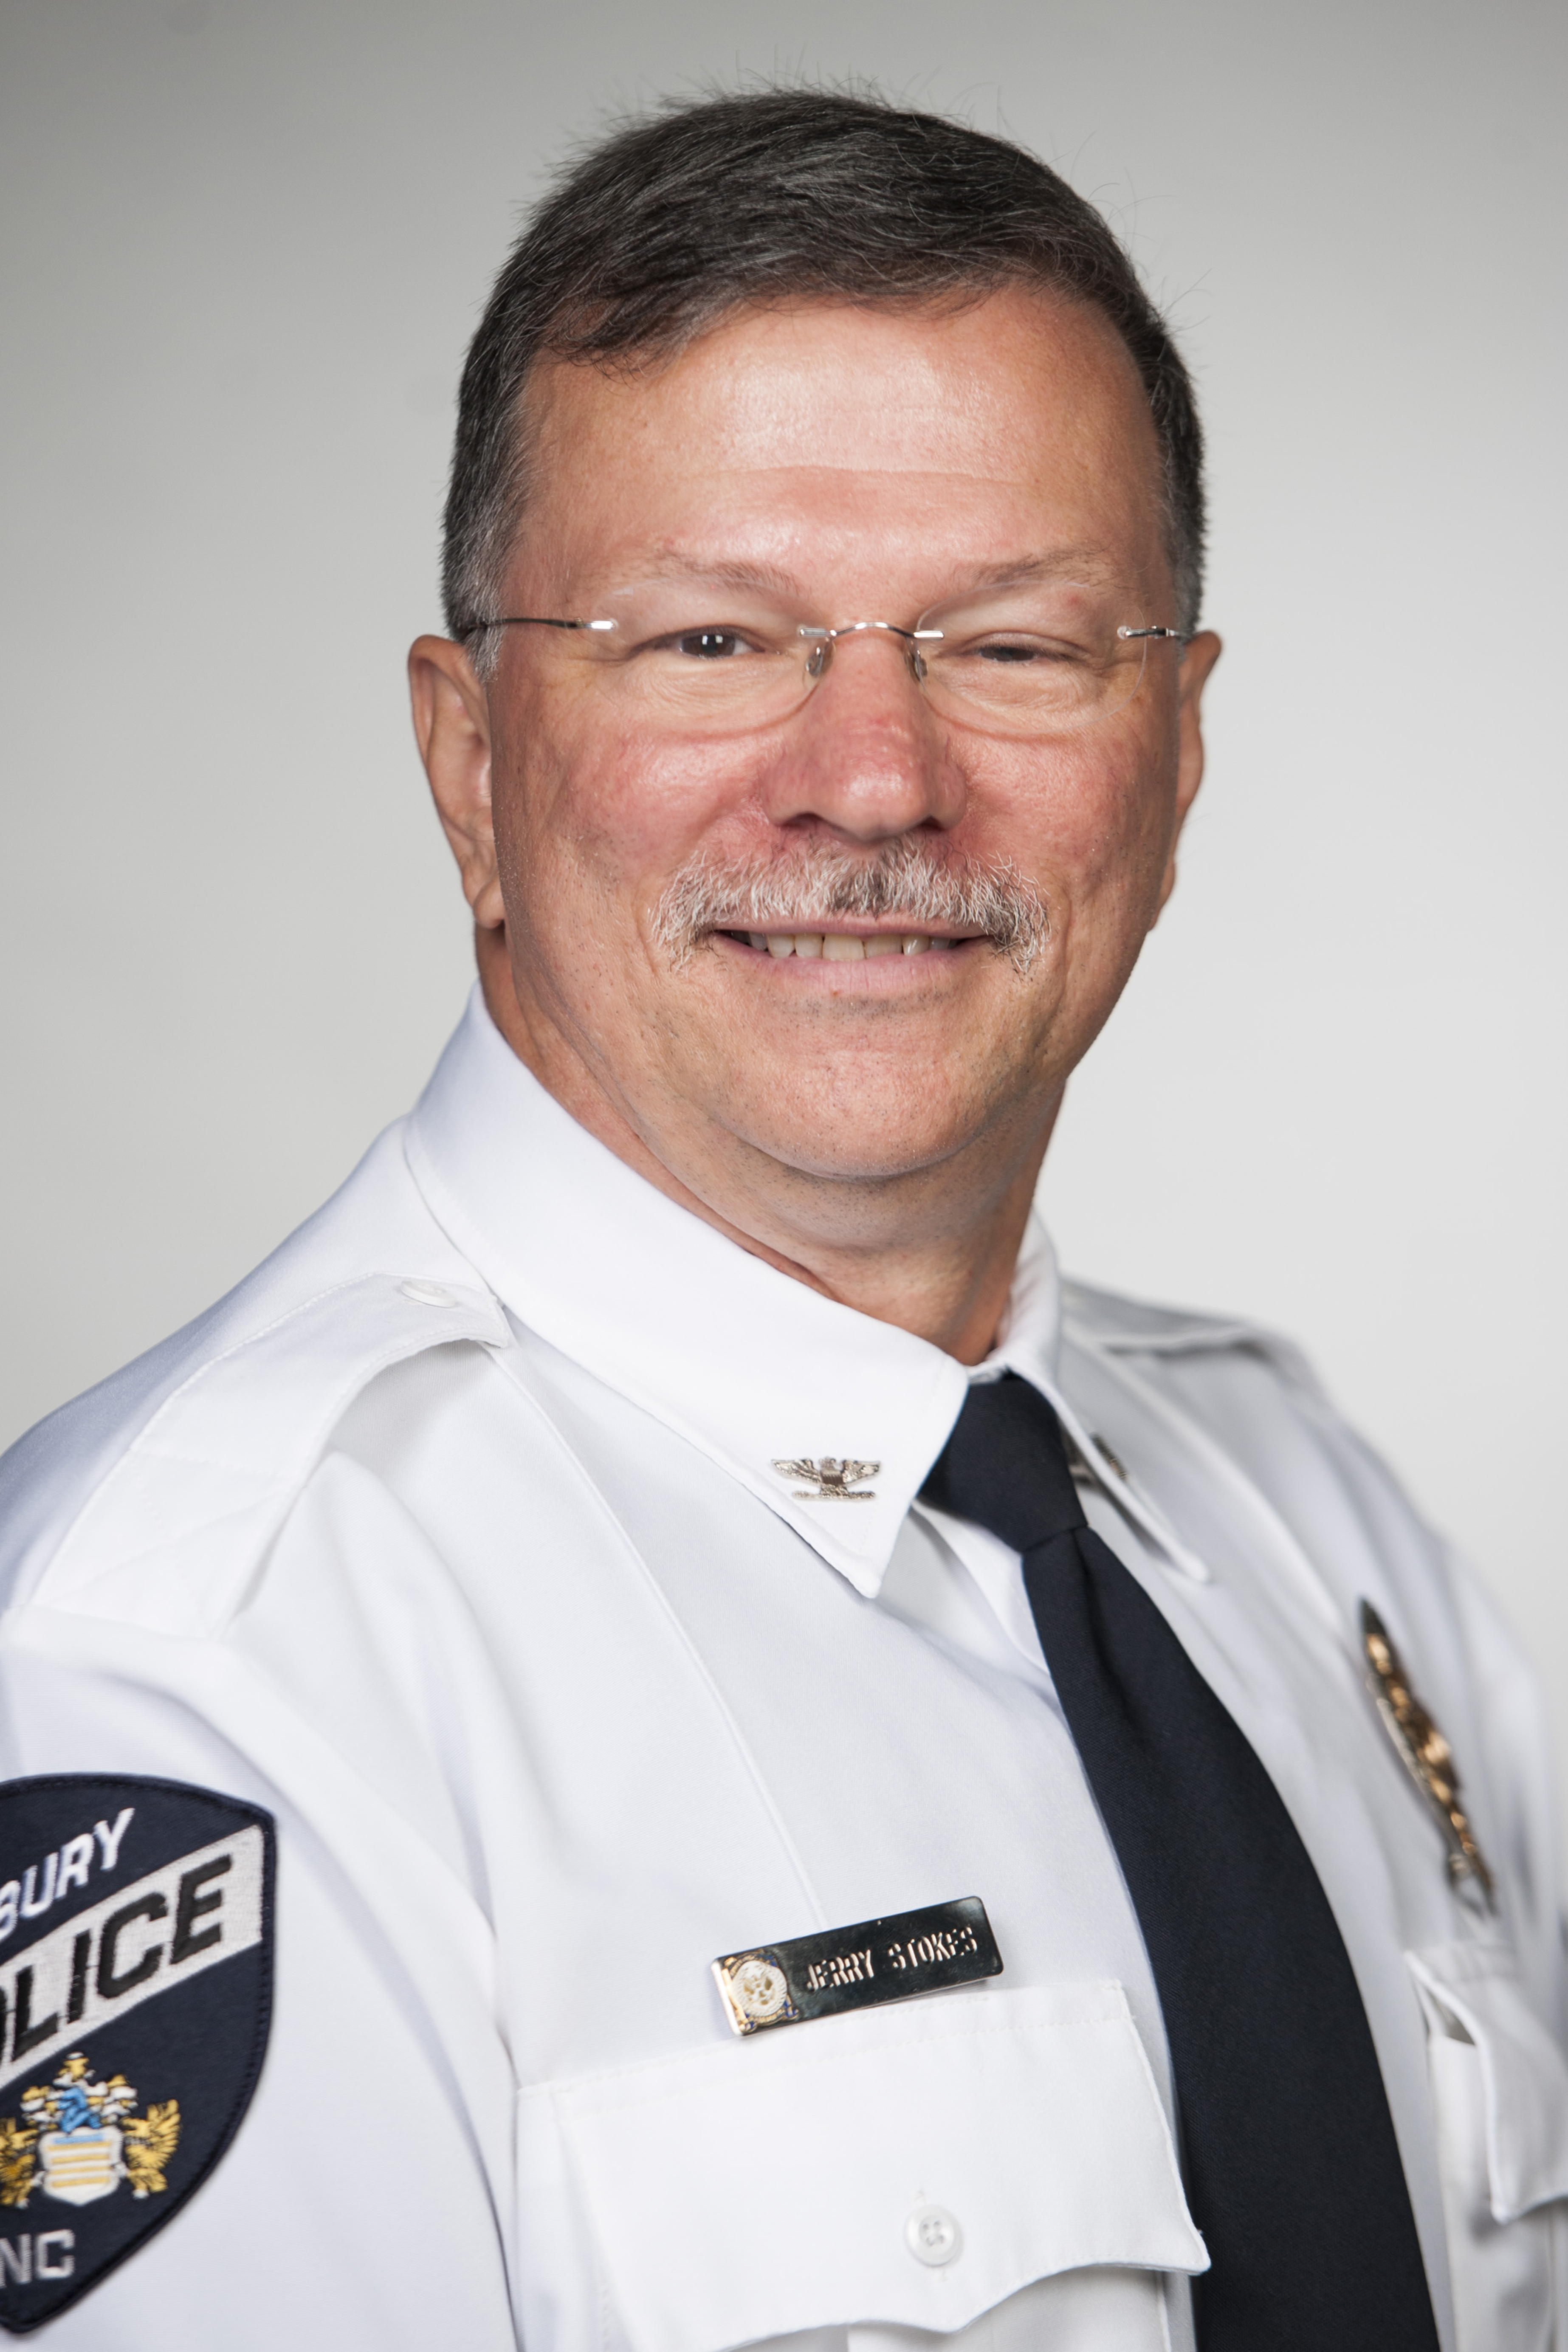 Police Chief Jerry Stokes